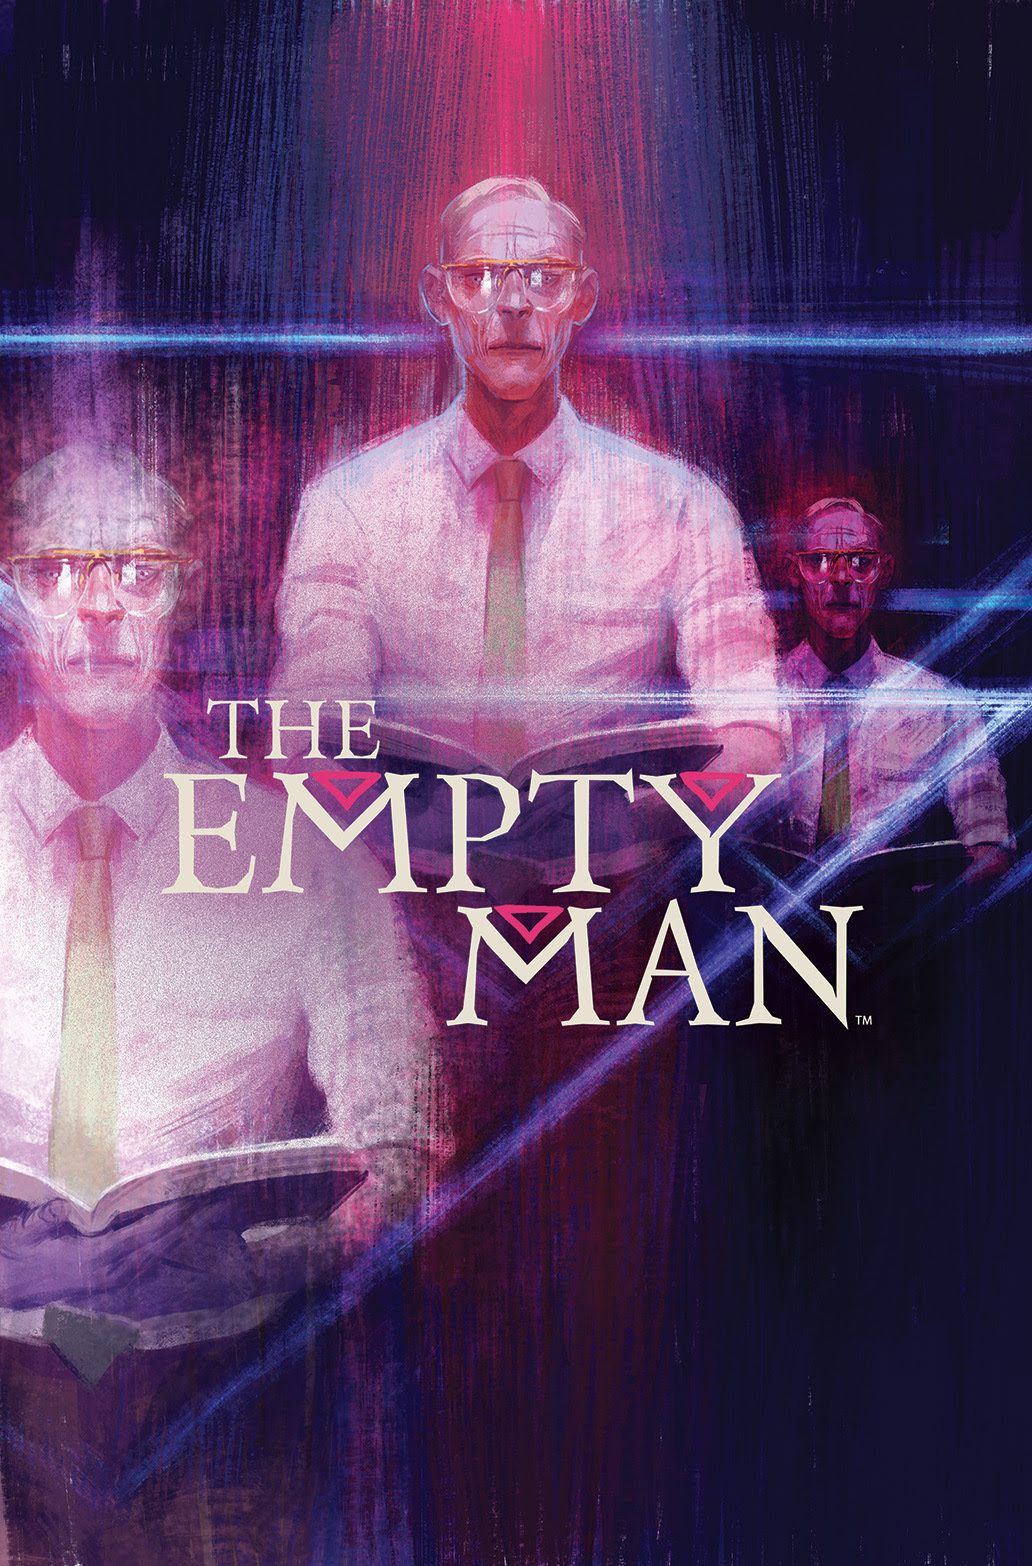 THE EMPTY MAN #4 Cover by Vanesa R. Del Rey